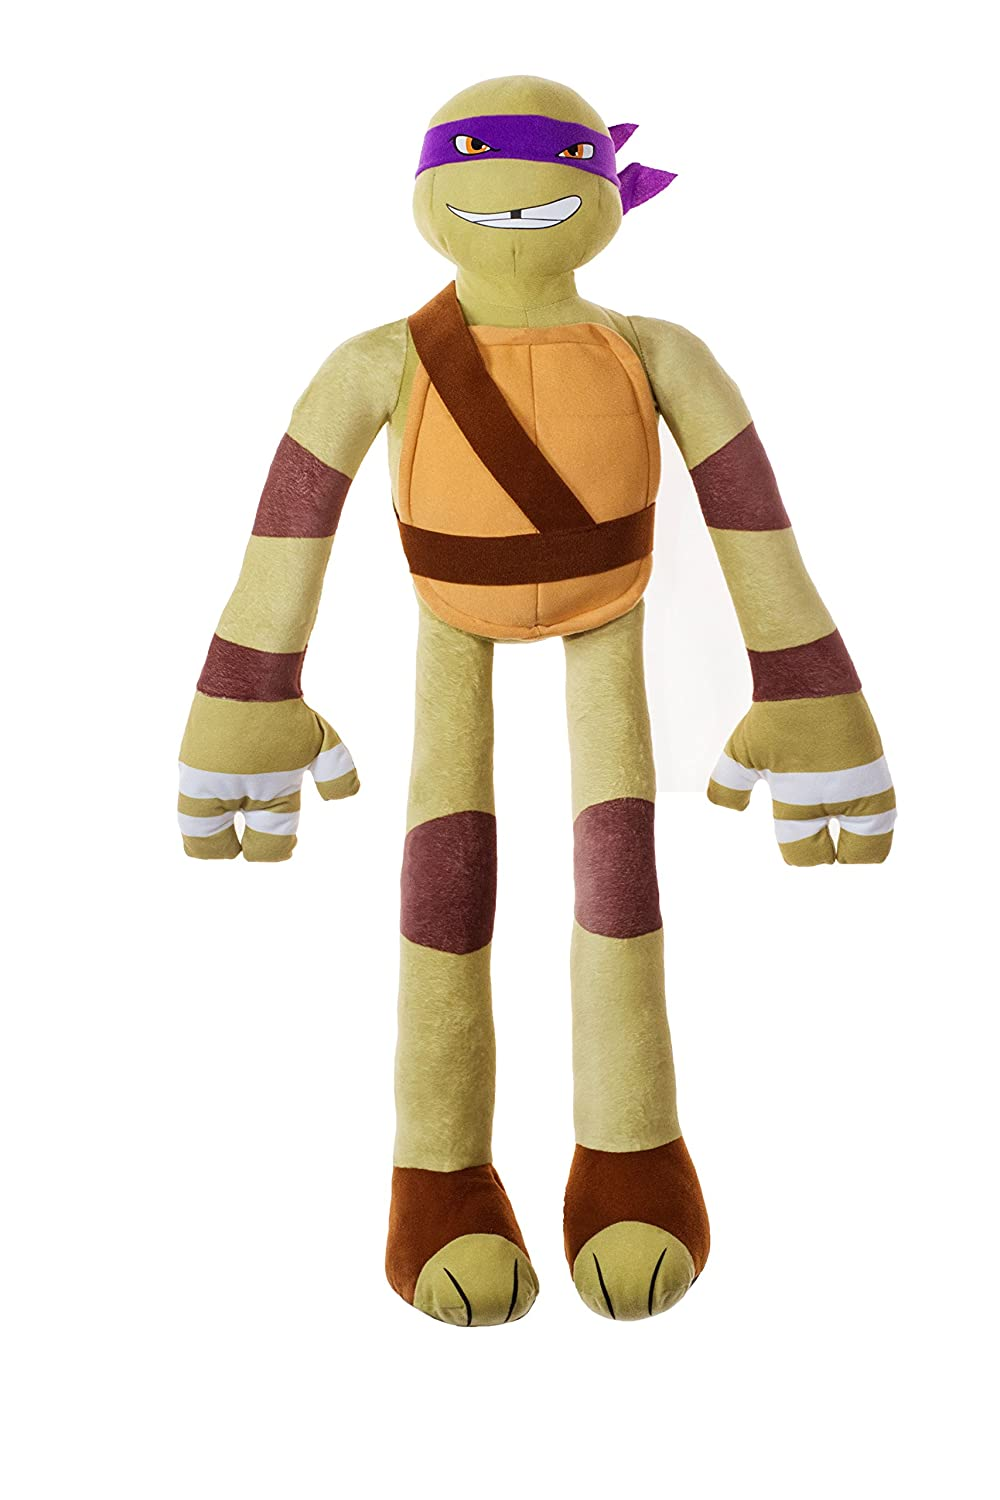 Stretchkins Teenage Mutant Ninja Turtle Donatello Life-size Plush Toy